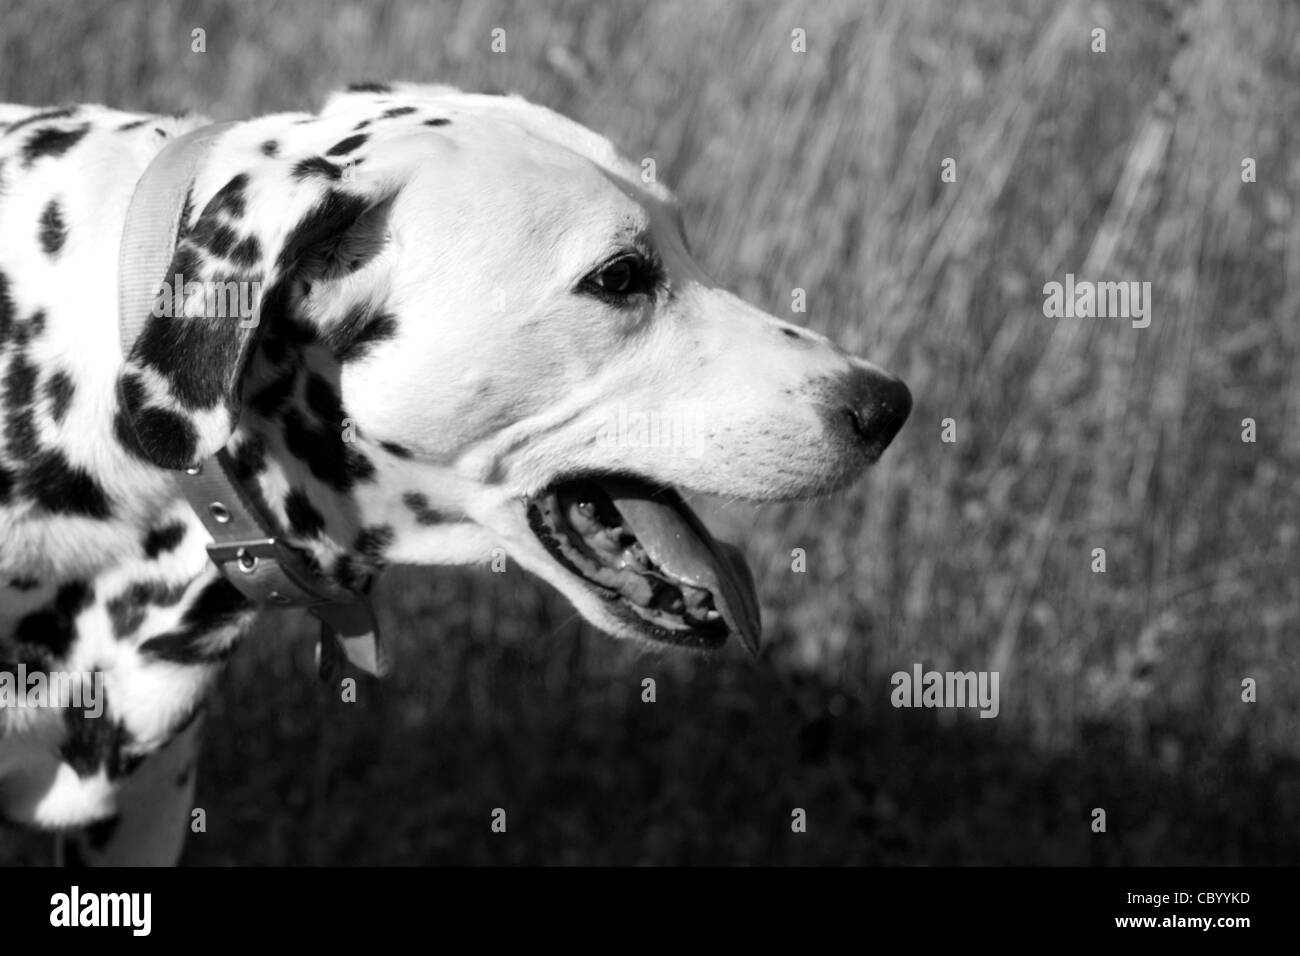 Profile portrait of a panting Dalmatian dog adjusted to b/w - Stock Image